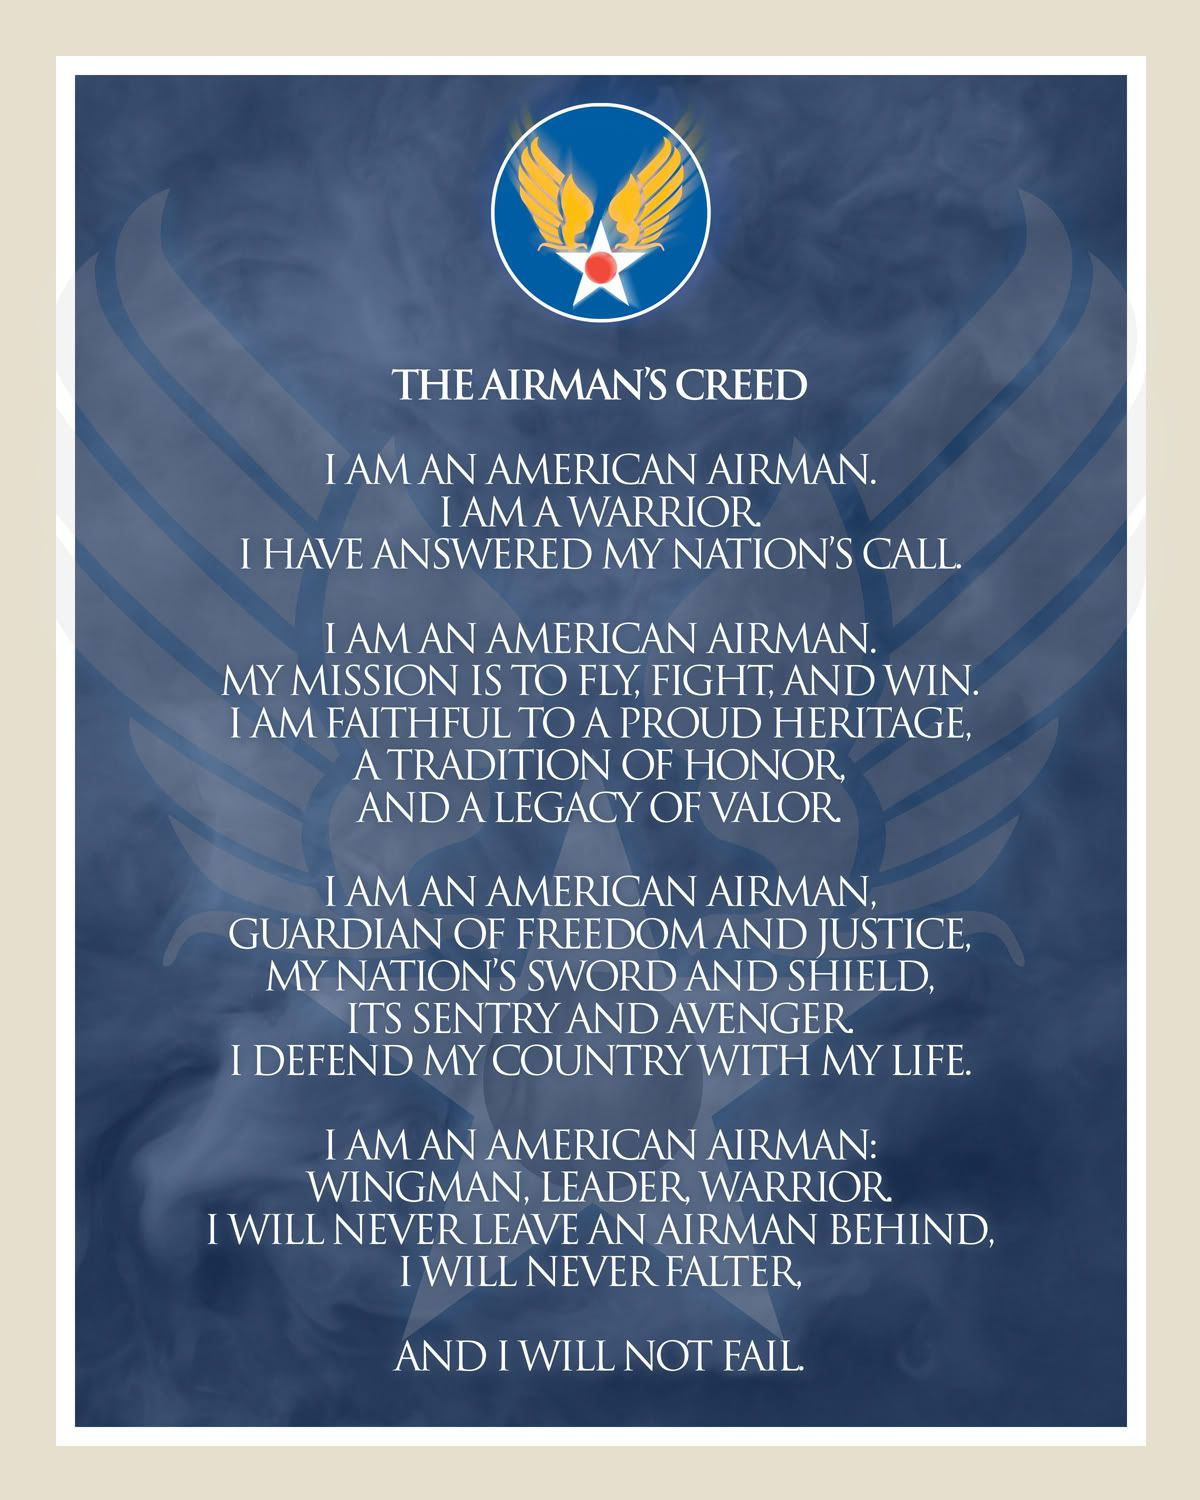 United states air force airmans creed photo this photo was united states air force airmans creed photo this photo was uploaded by captainpike find other united states air force airmans creed pictures and pho thecheapjerseys Images